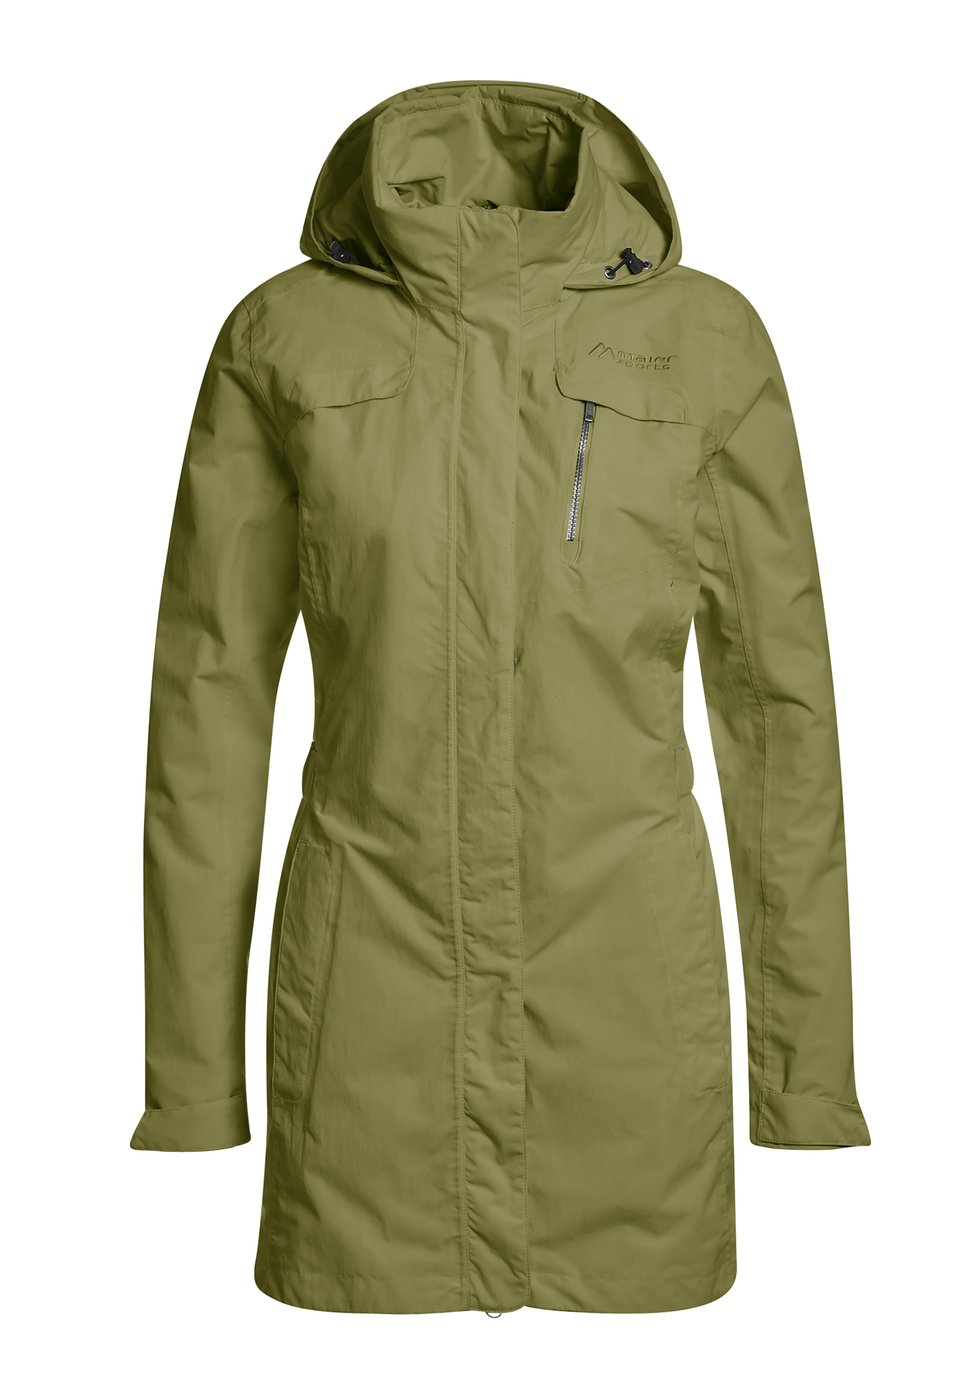 Maier Sports Damen Funktionsjacke Beaumaris - capulet olive -